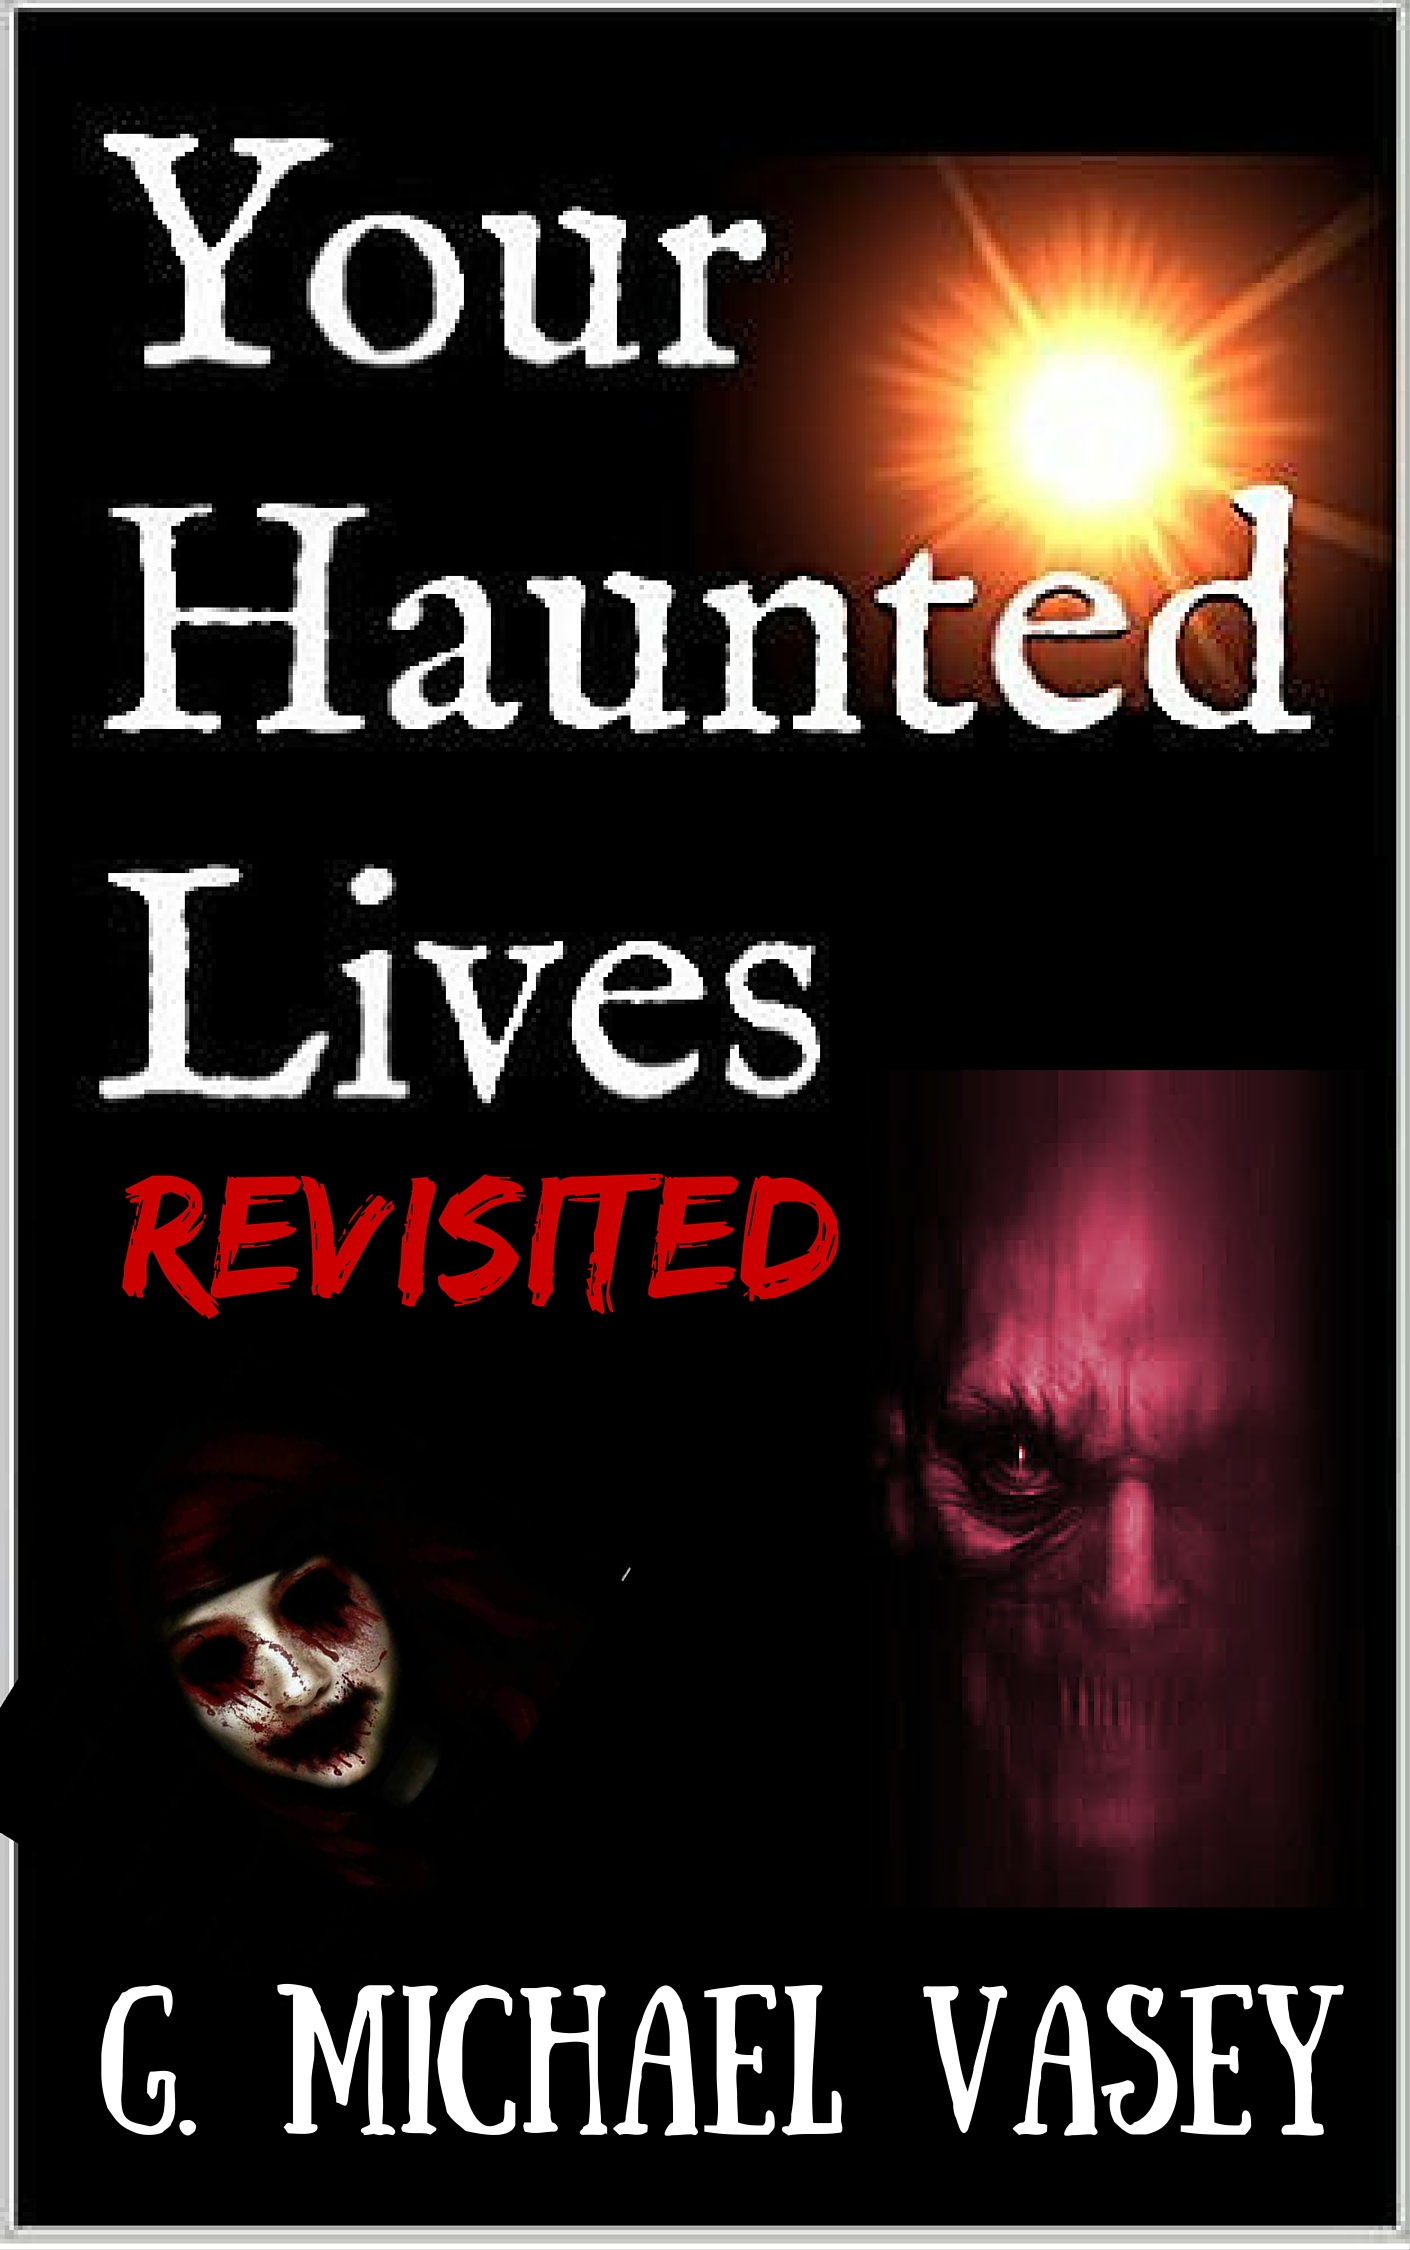 My Haunted Lives Revisited New Cover Final